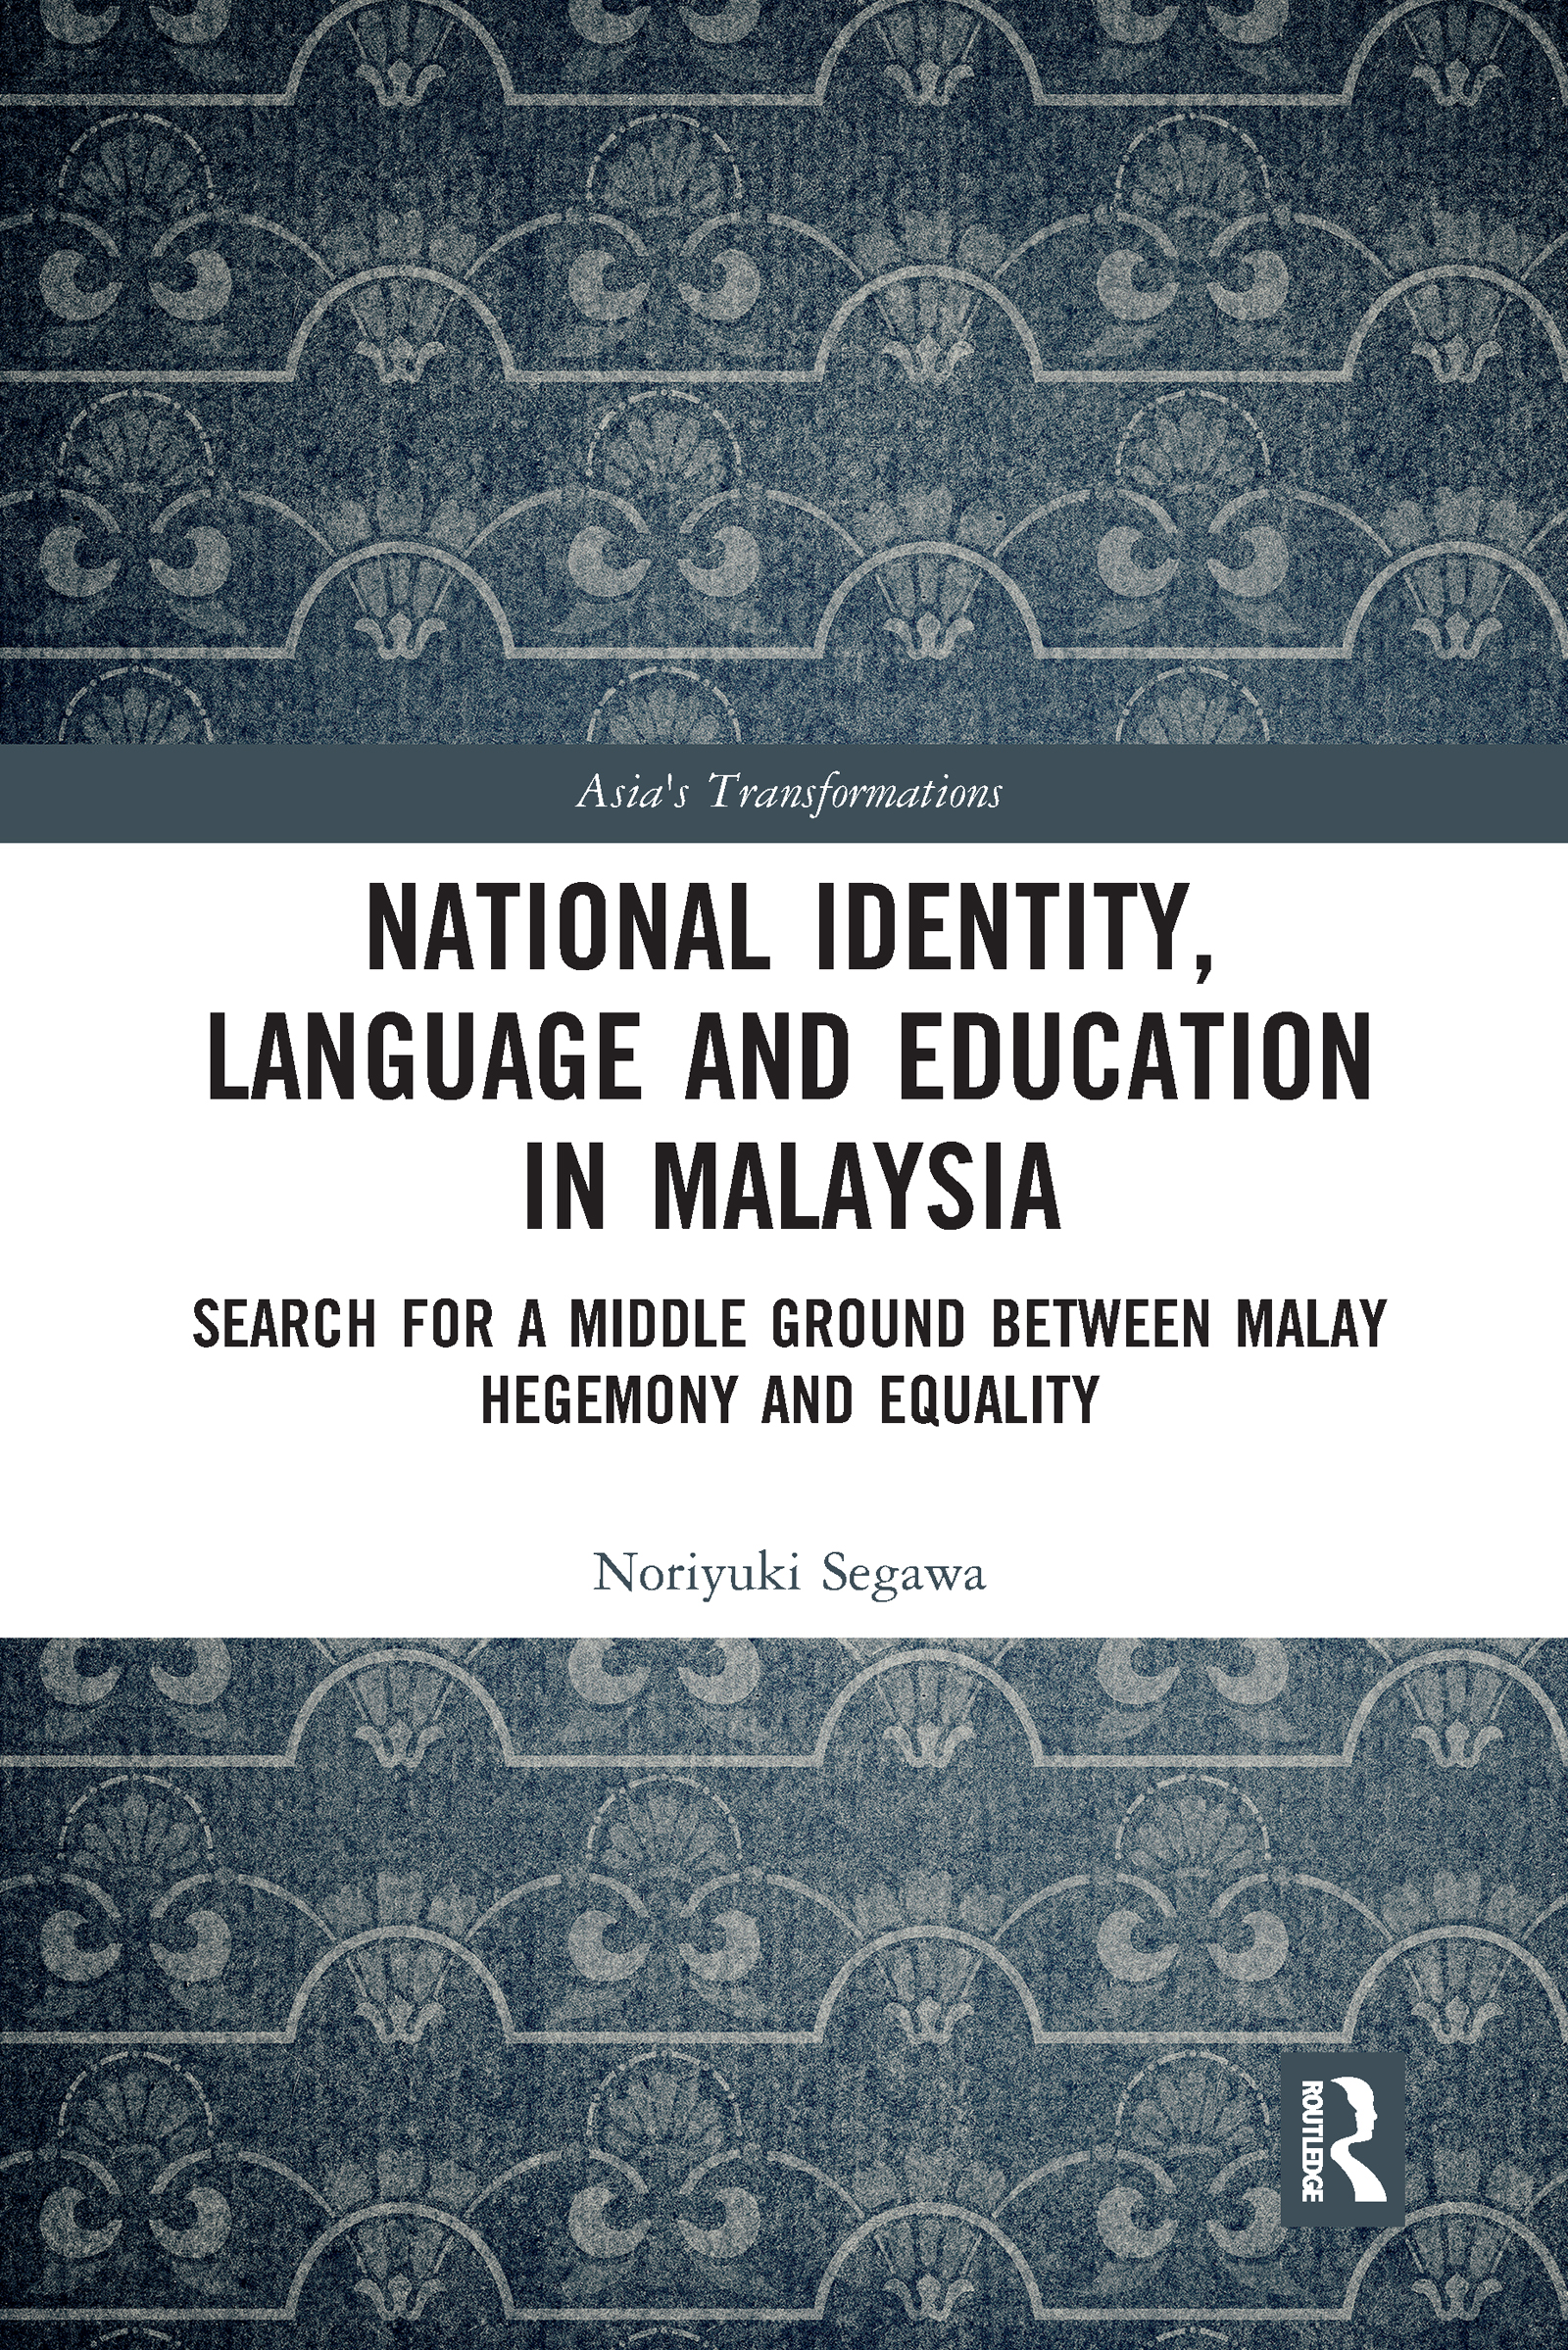 National Identity, Language and Education in Malaysia